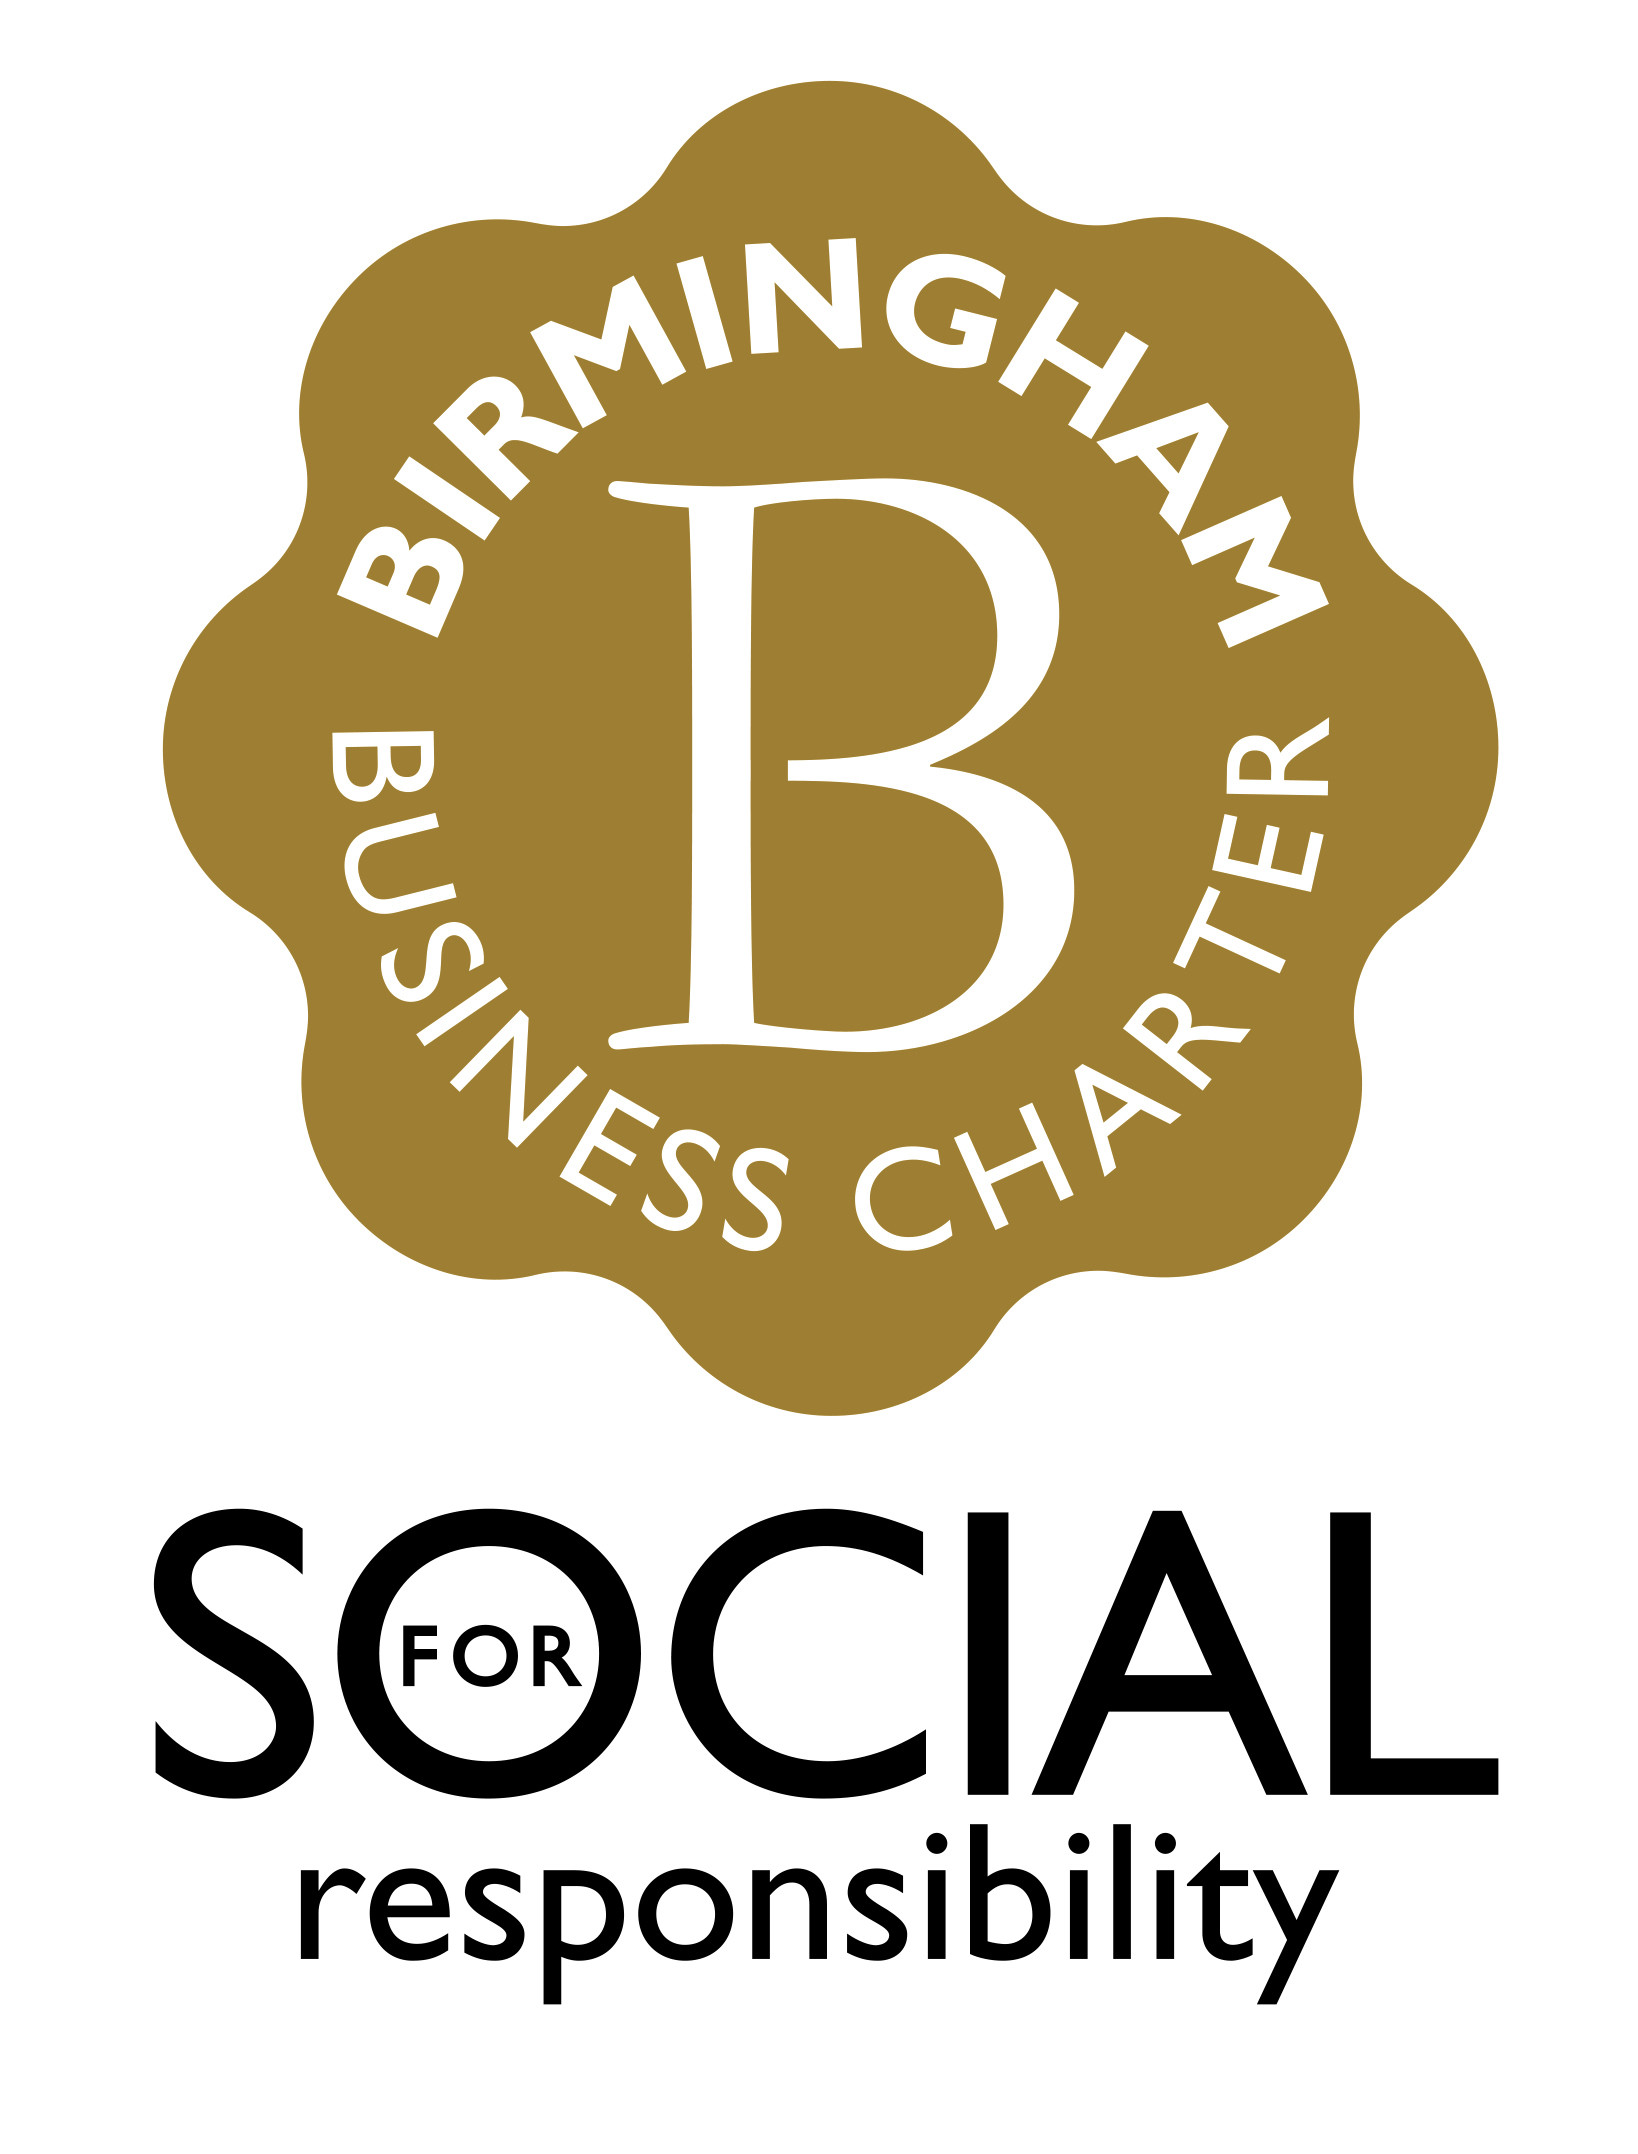 Business Charter Social Responsibility